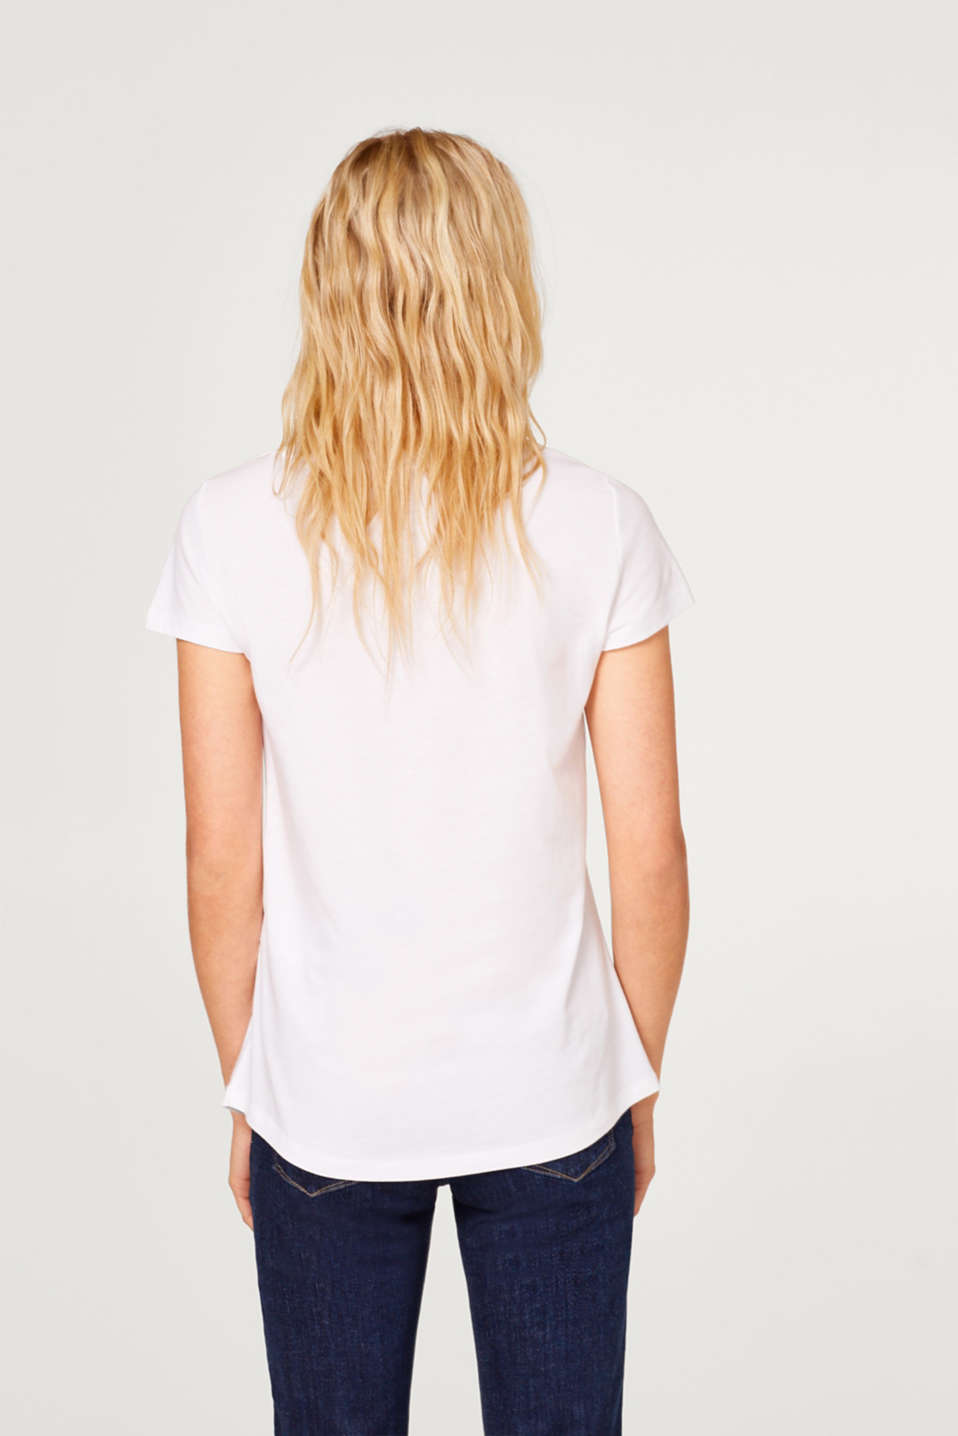 In a pack of two: round neck T-shirts